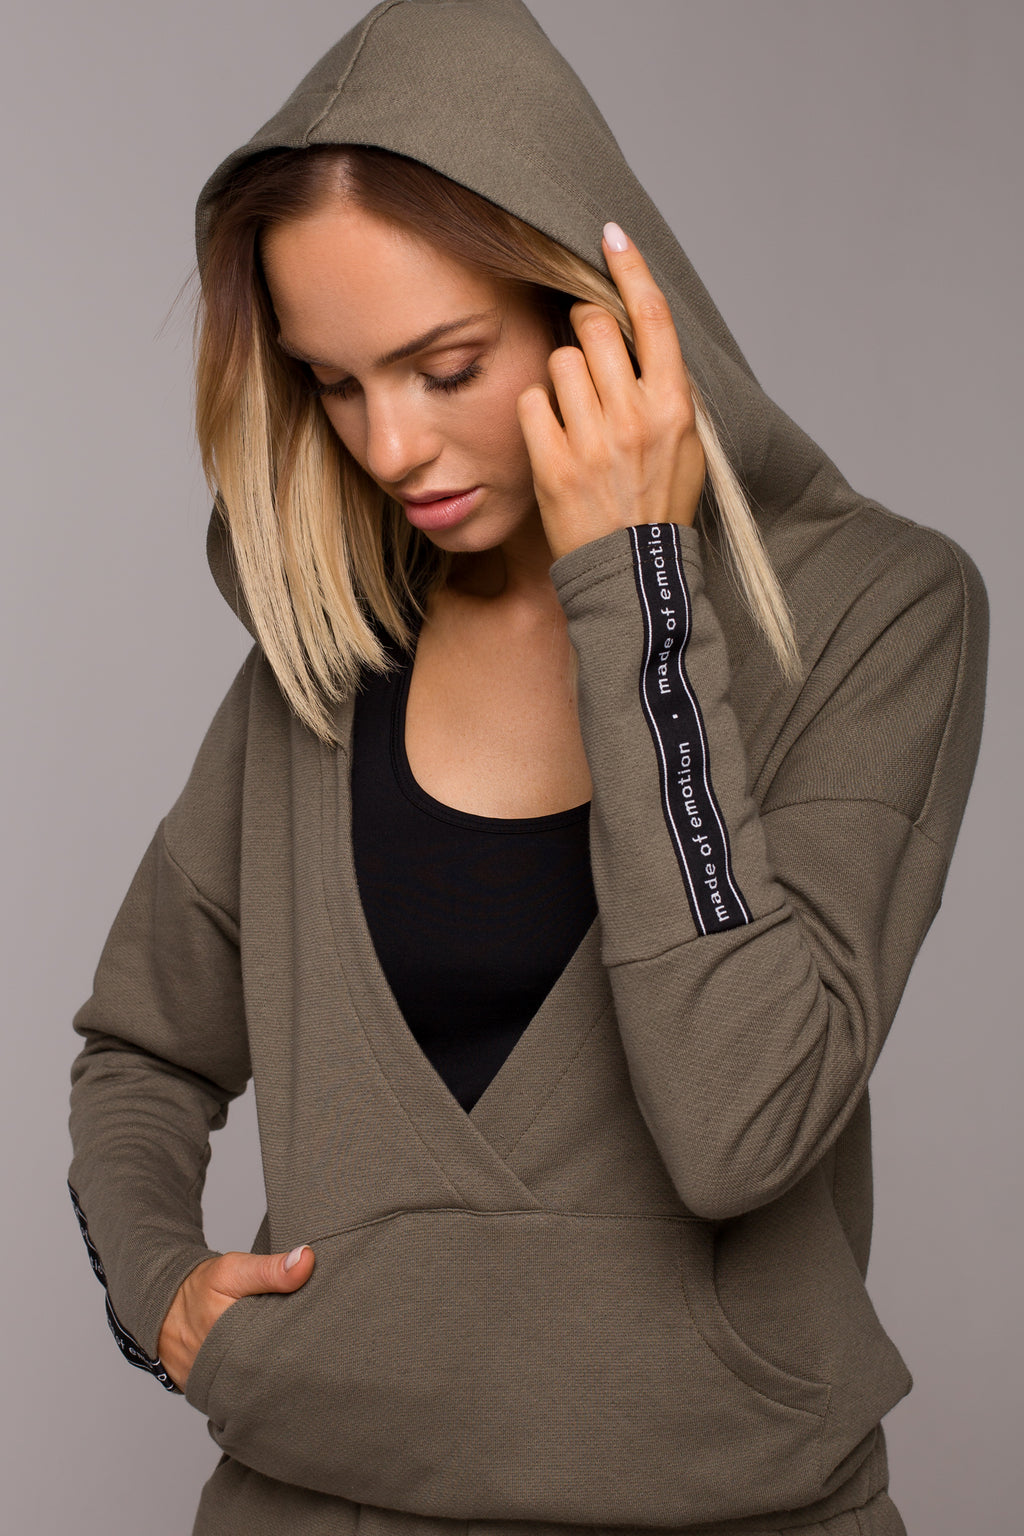 Kangaroo Pocket Khaki Hoodie With Wrap Front - So Chic Boutique